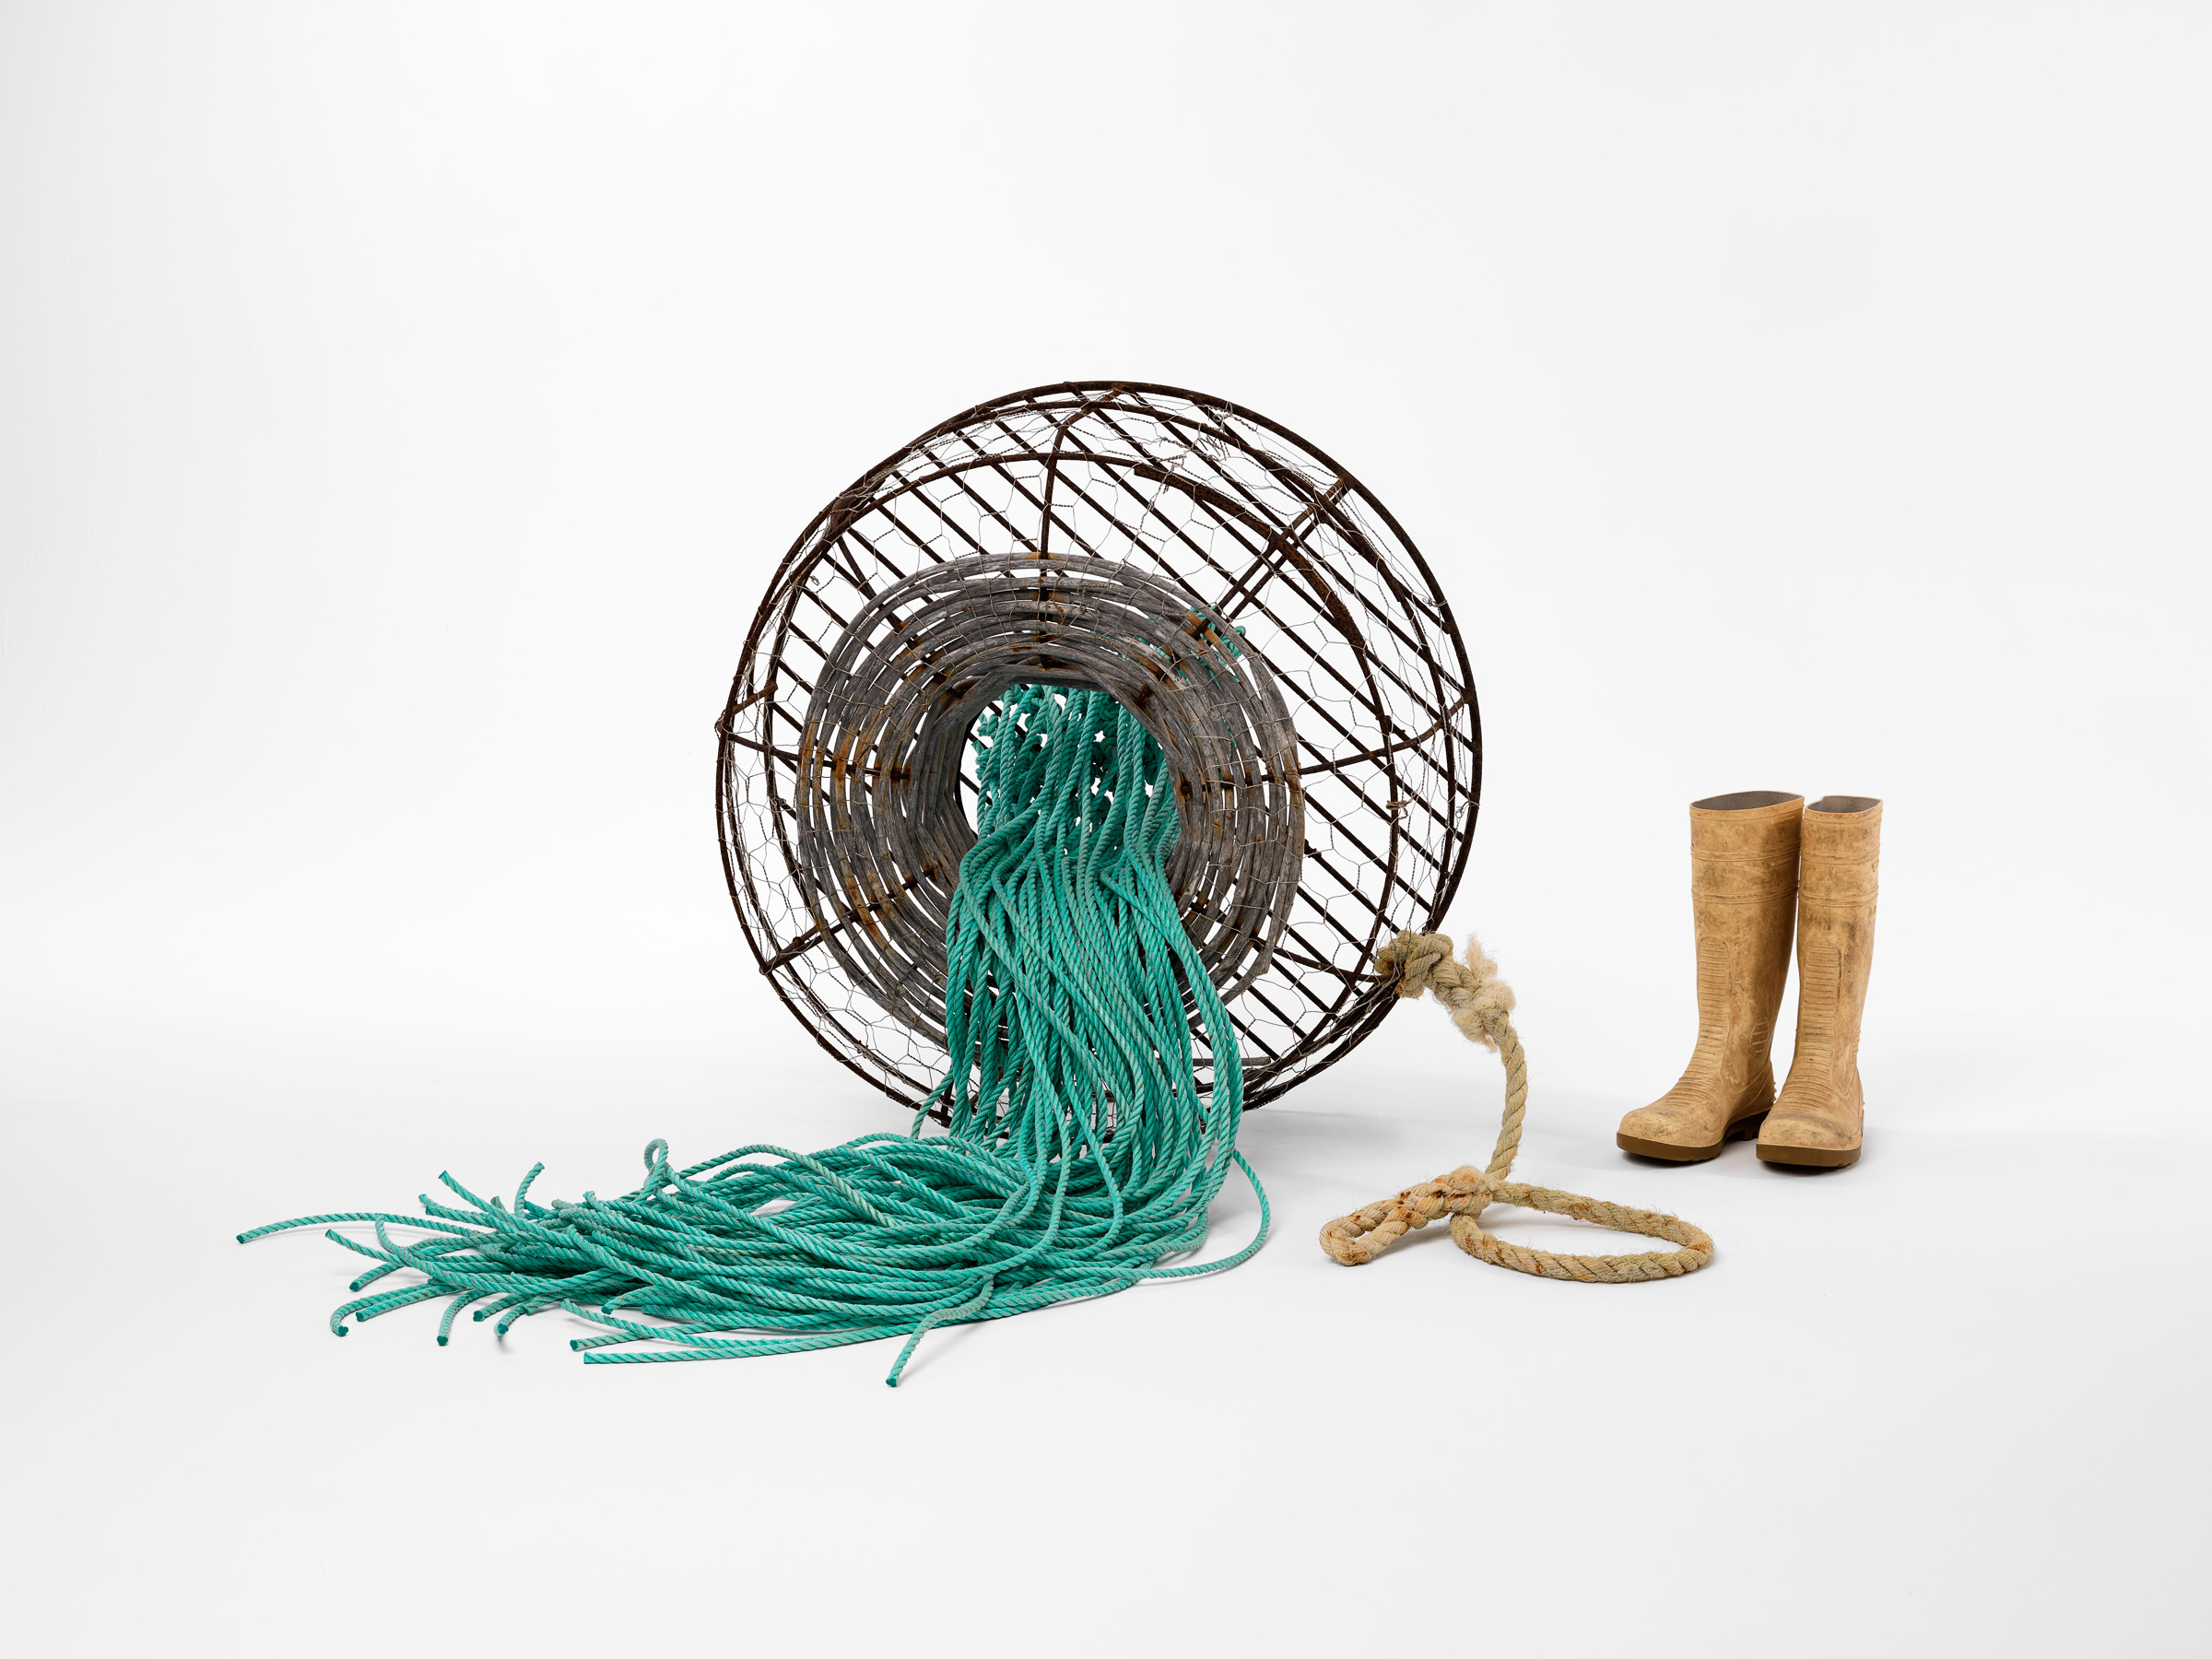 Transience   2016  Discarded steel, cane, wire netting, wire, rubber boots & rope  90 x 120 x 110cm  photographer Grant Hancock